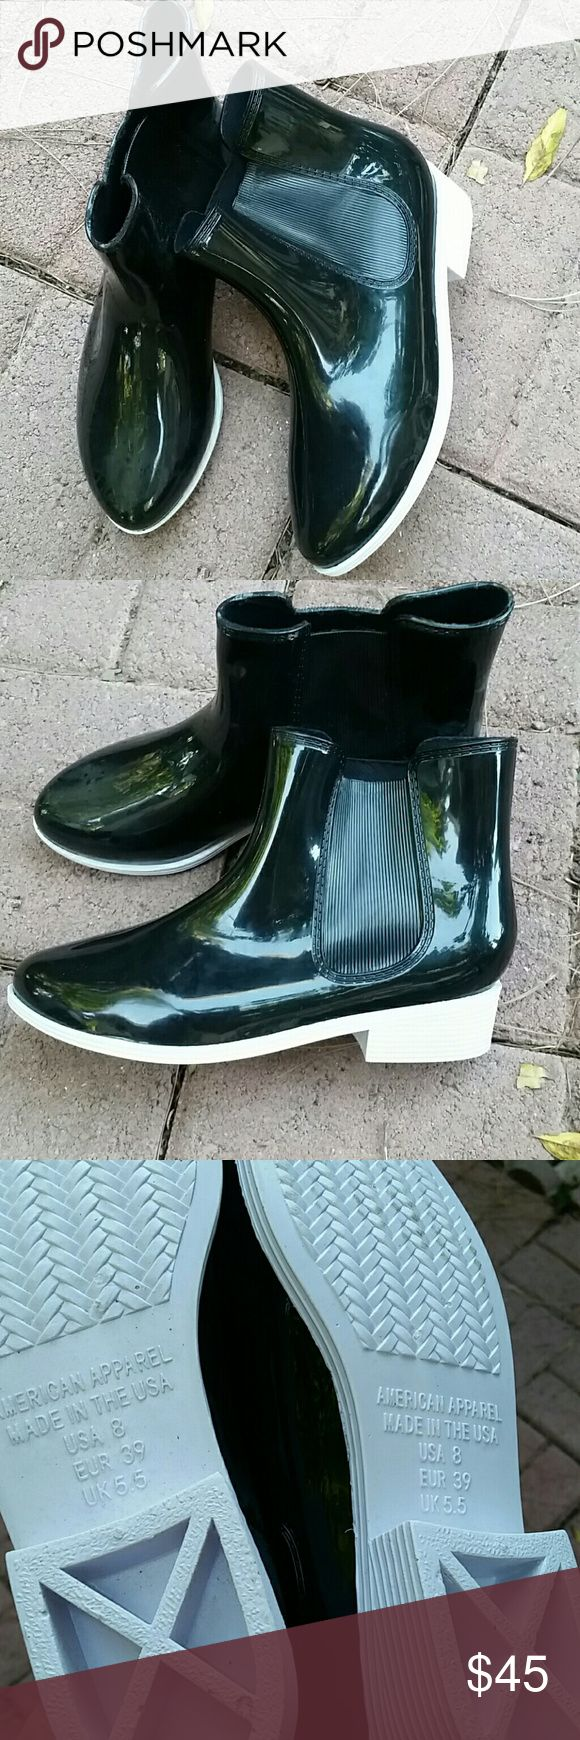 American Apparel rain boot ankle boot city boot Brand new ,never been worn American Apparel rain boot ankle boot City Boot / size 8  / Made in USA / NO trades price is firm! American Apparel Shoes Winter & Rain Boots